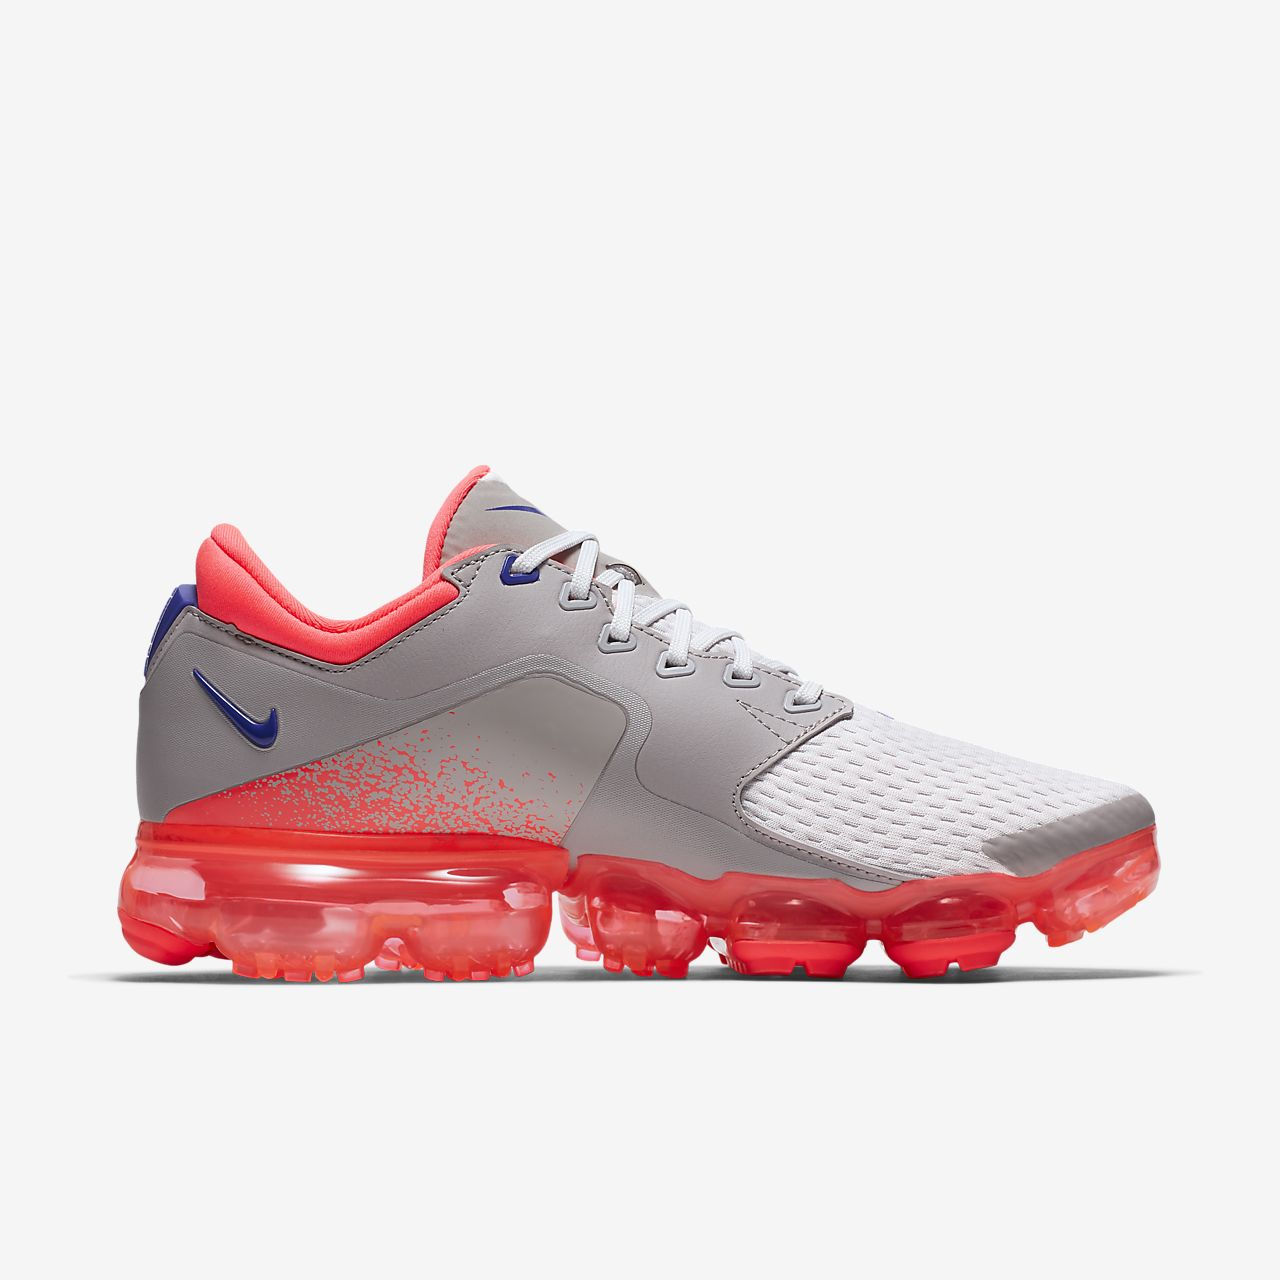 nike air max vapormax woman nz